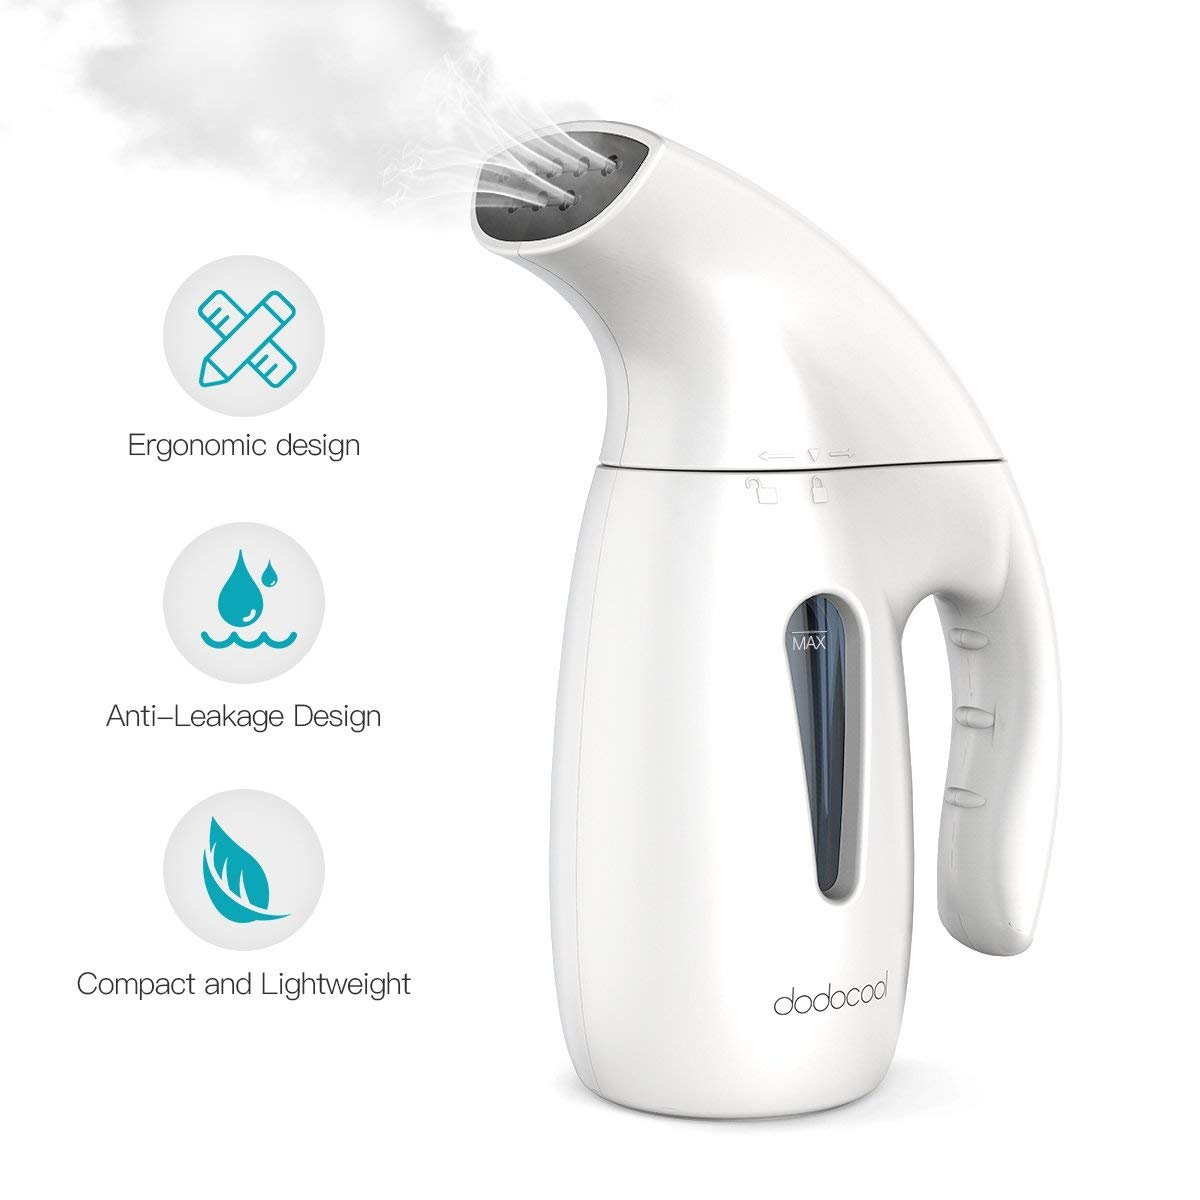 dodocool Steamer For Clothes, 5-in-1 Clothes Steamer,Garment Steamer,Fabric Steamer,Travel Steamer,Handheld Steamer Powerful Steamer Wrinkle Remover With Automatic Shut-Off Safety Protection-180ML